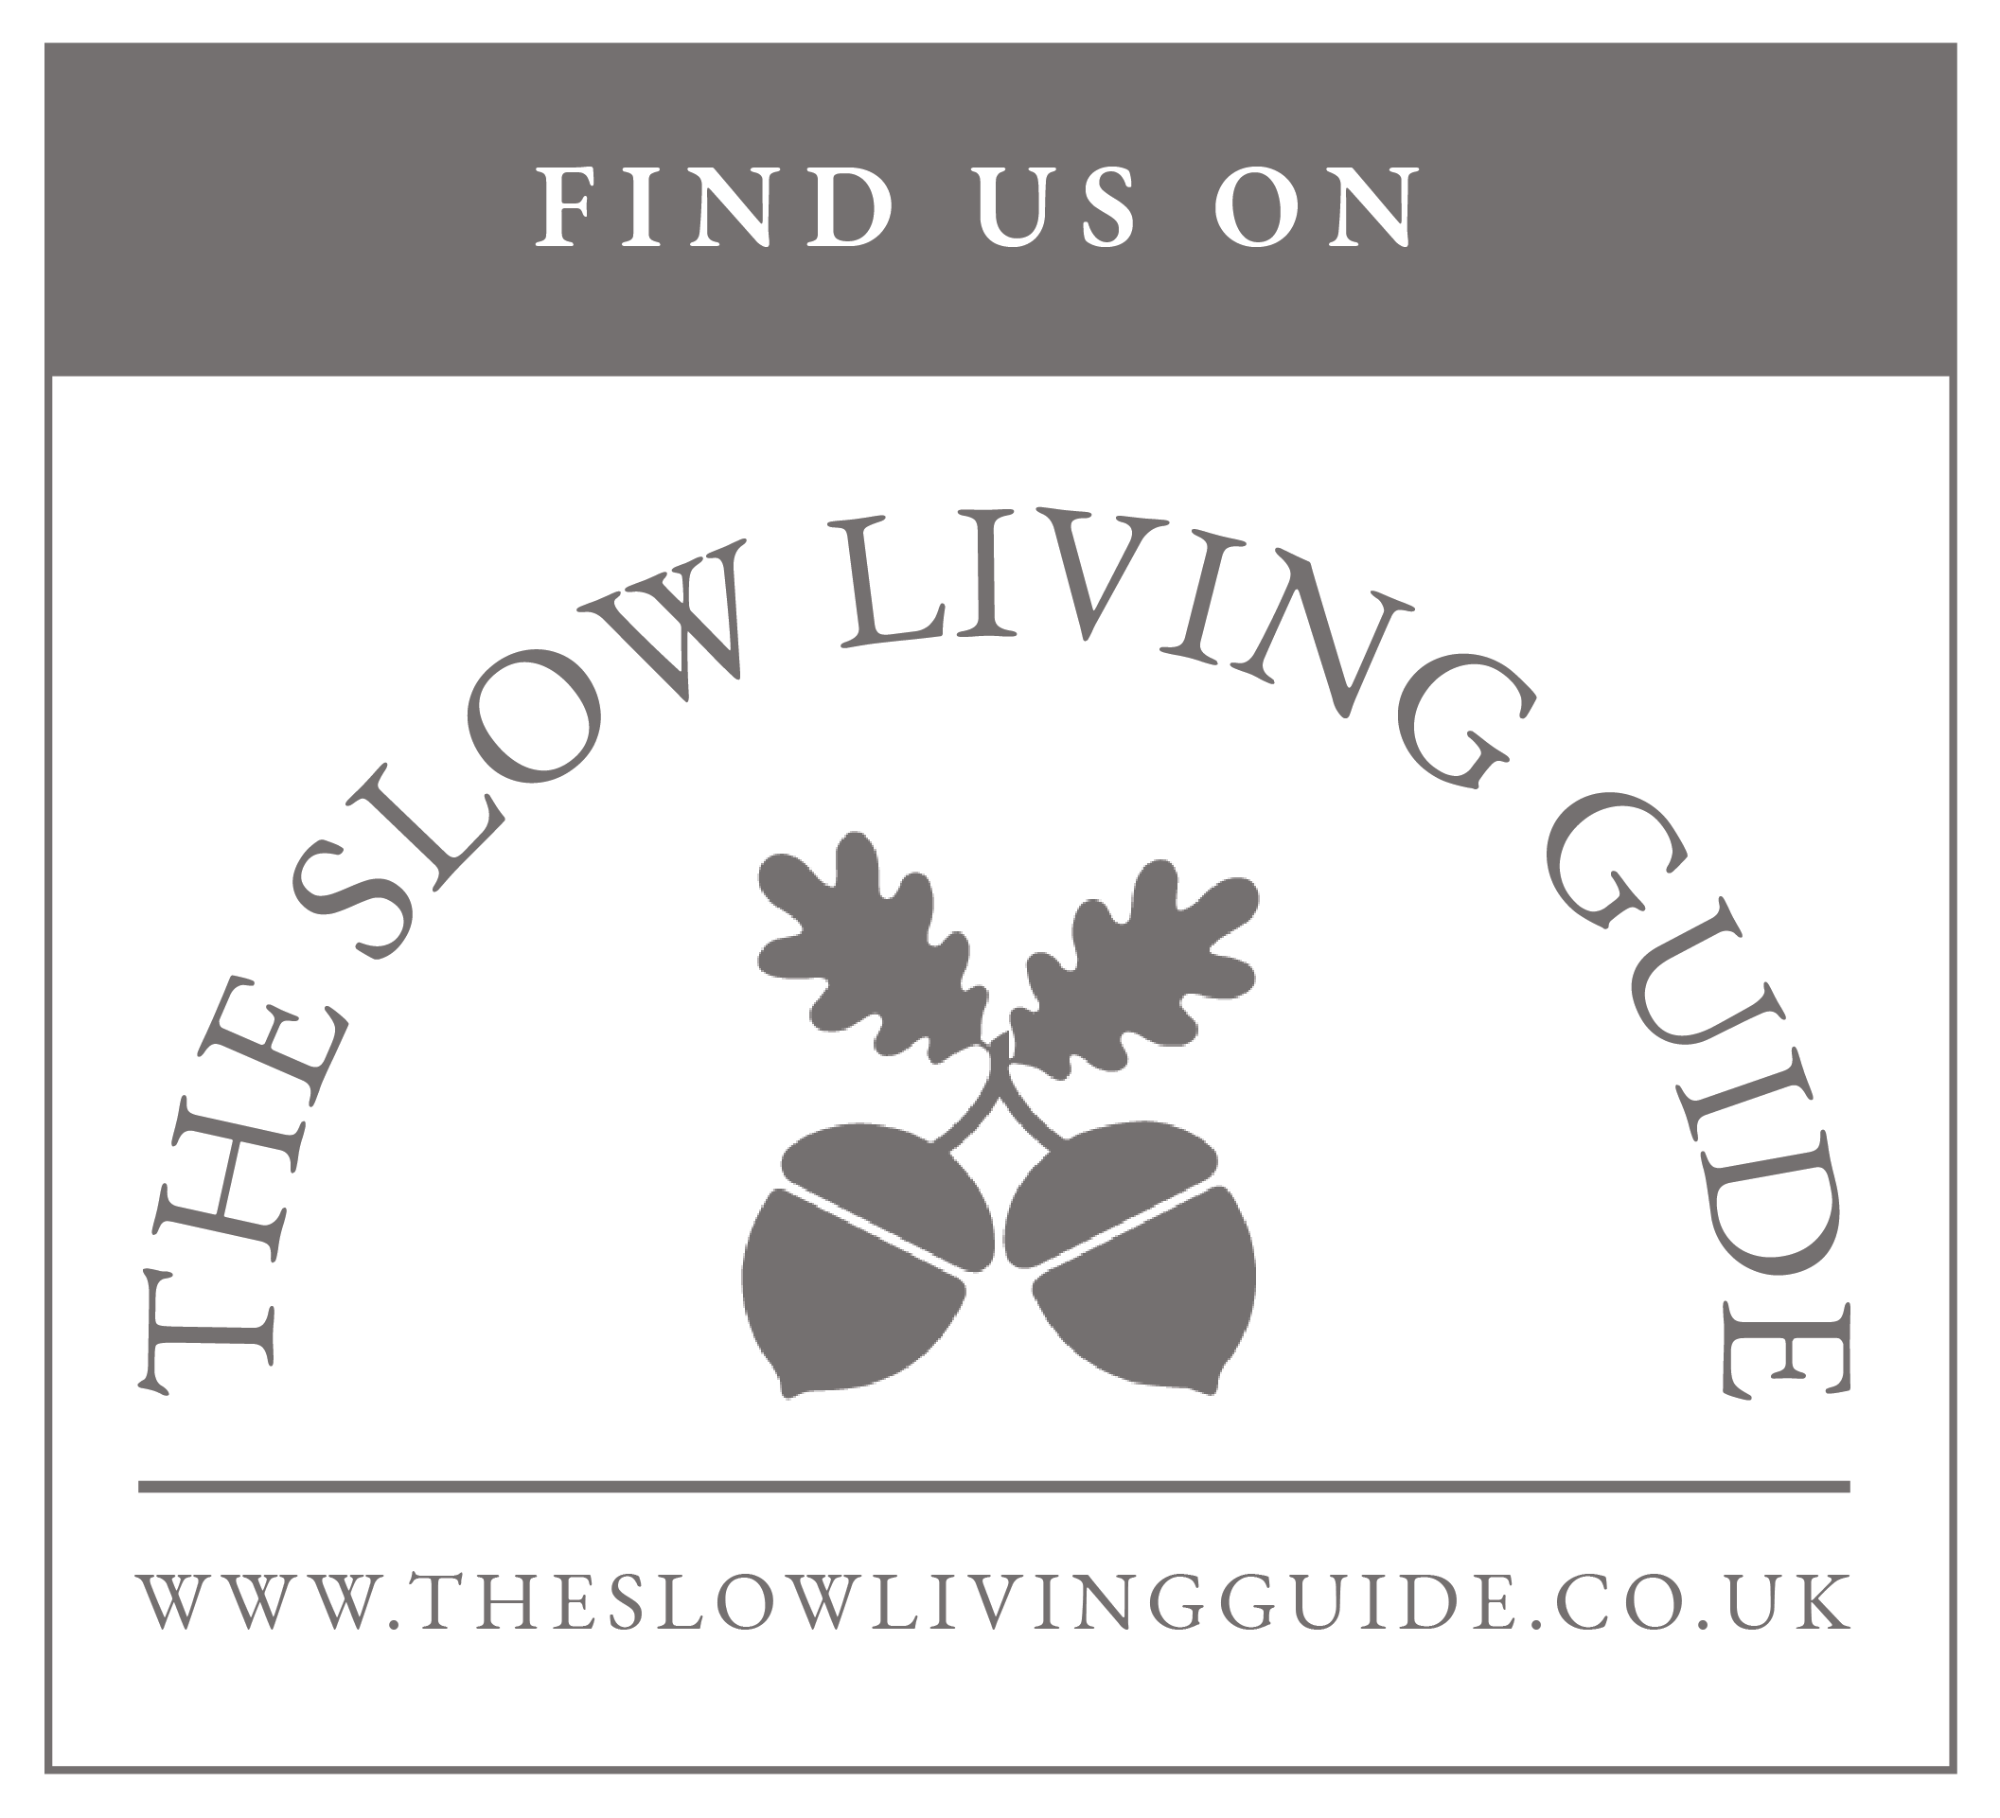 The Slow Living Guide